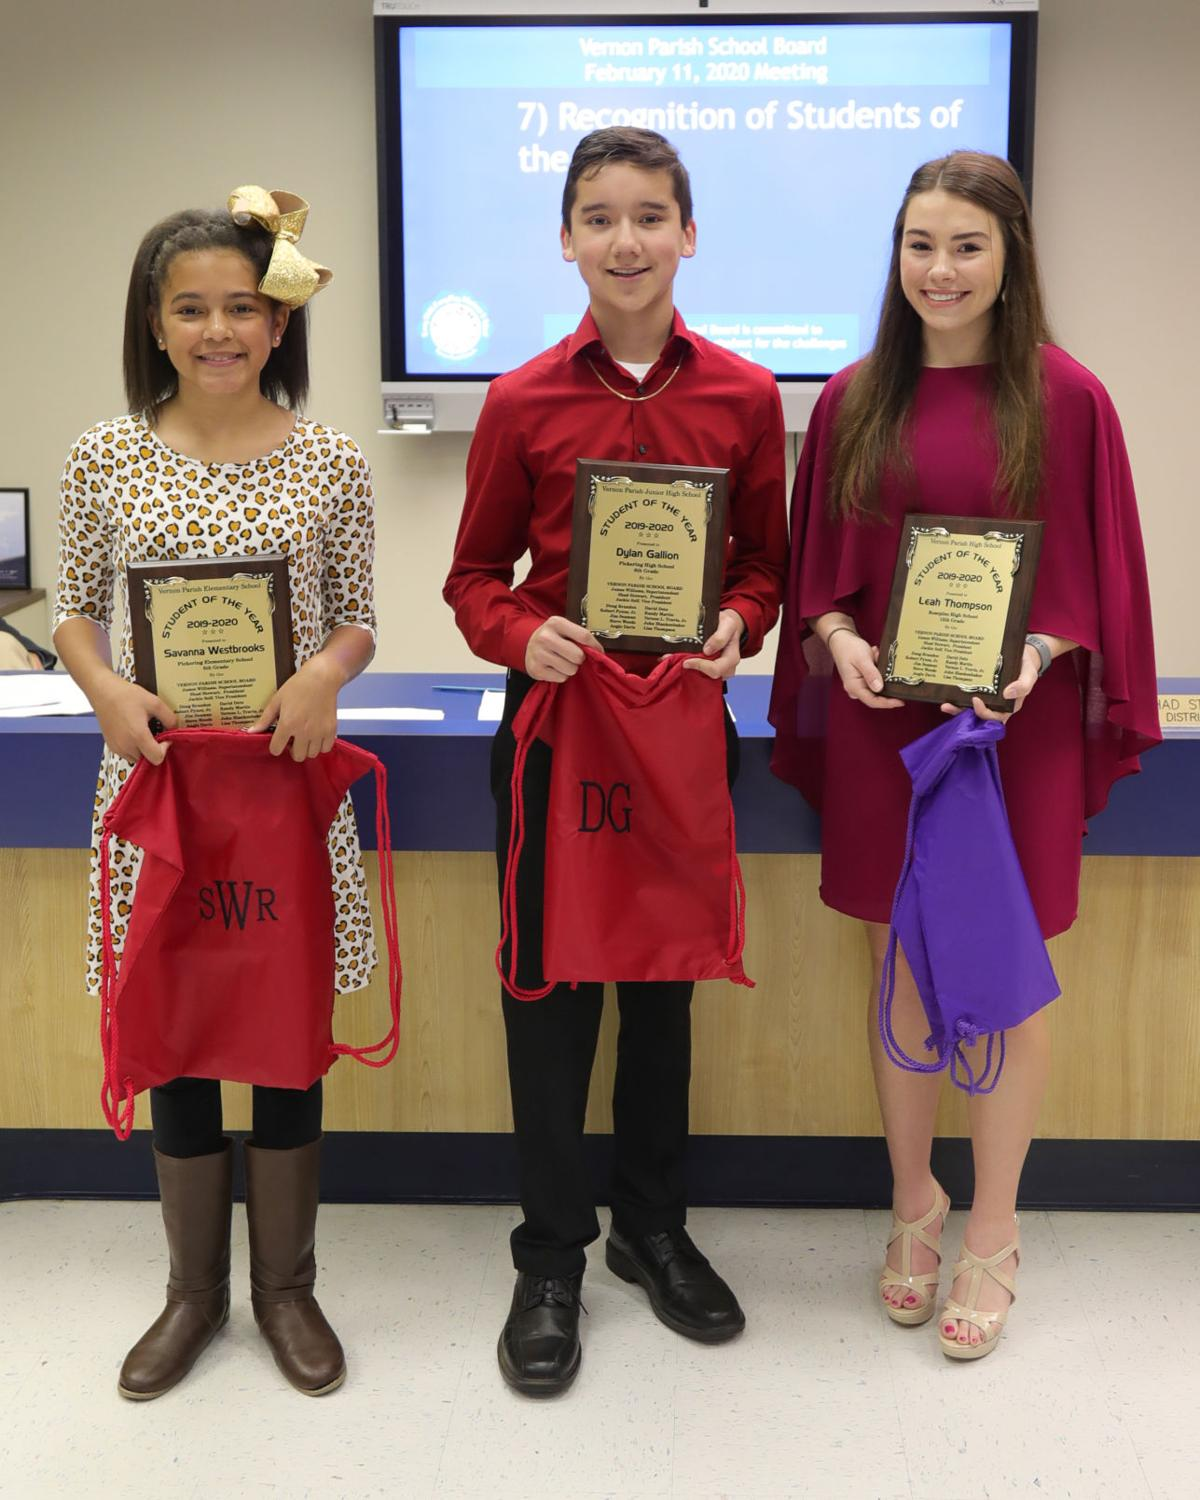 VPSB Student of the Year 2020 - District Level.jpg